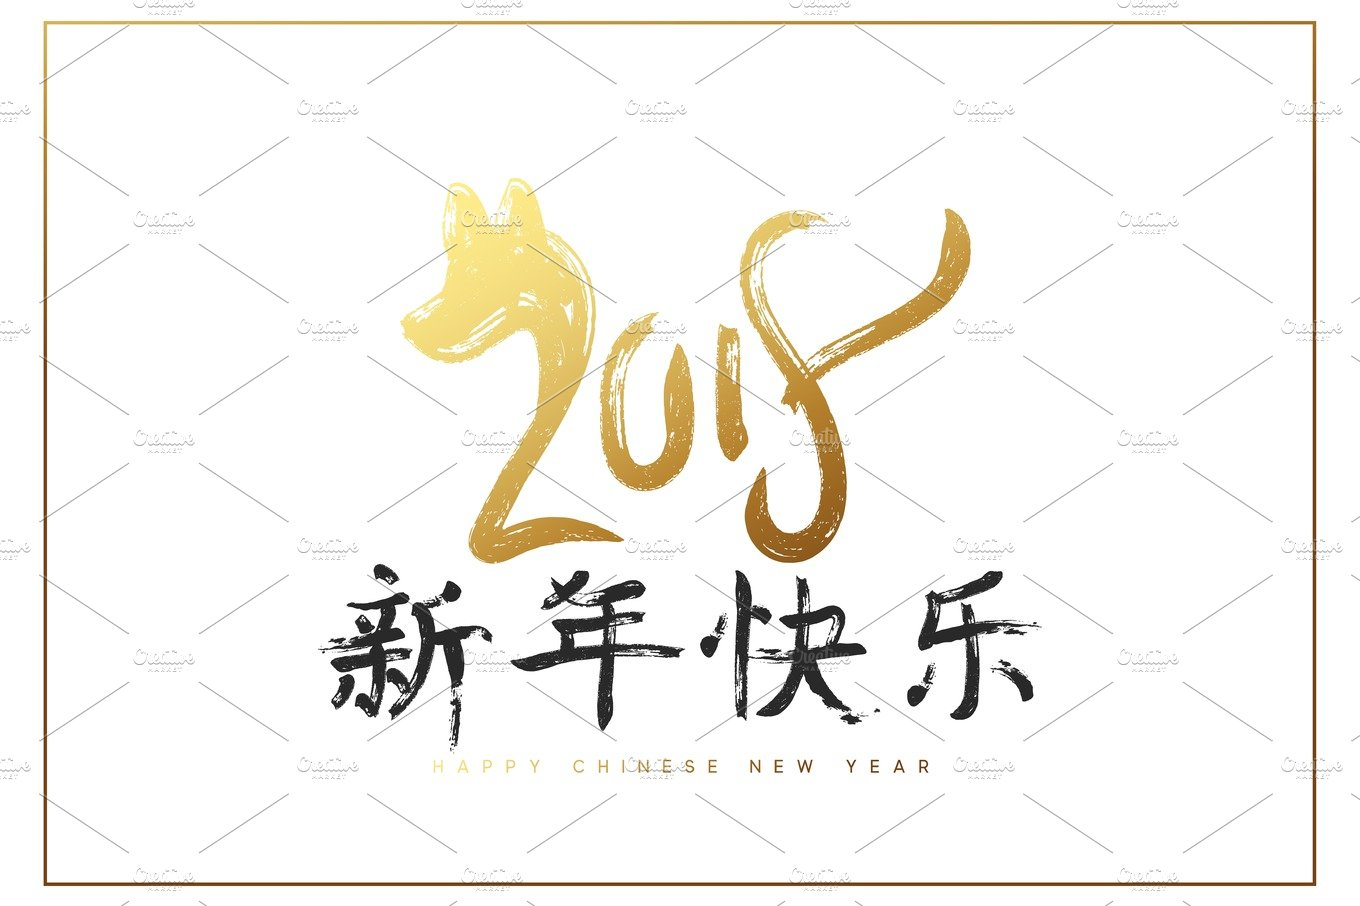 year of dog the chinese zodiac 2018 calligraphy lettering happy chinese new year - Chinese New Year Zodiac